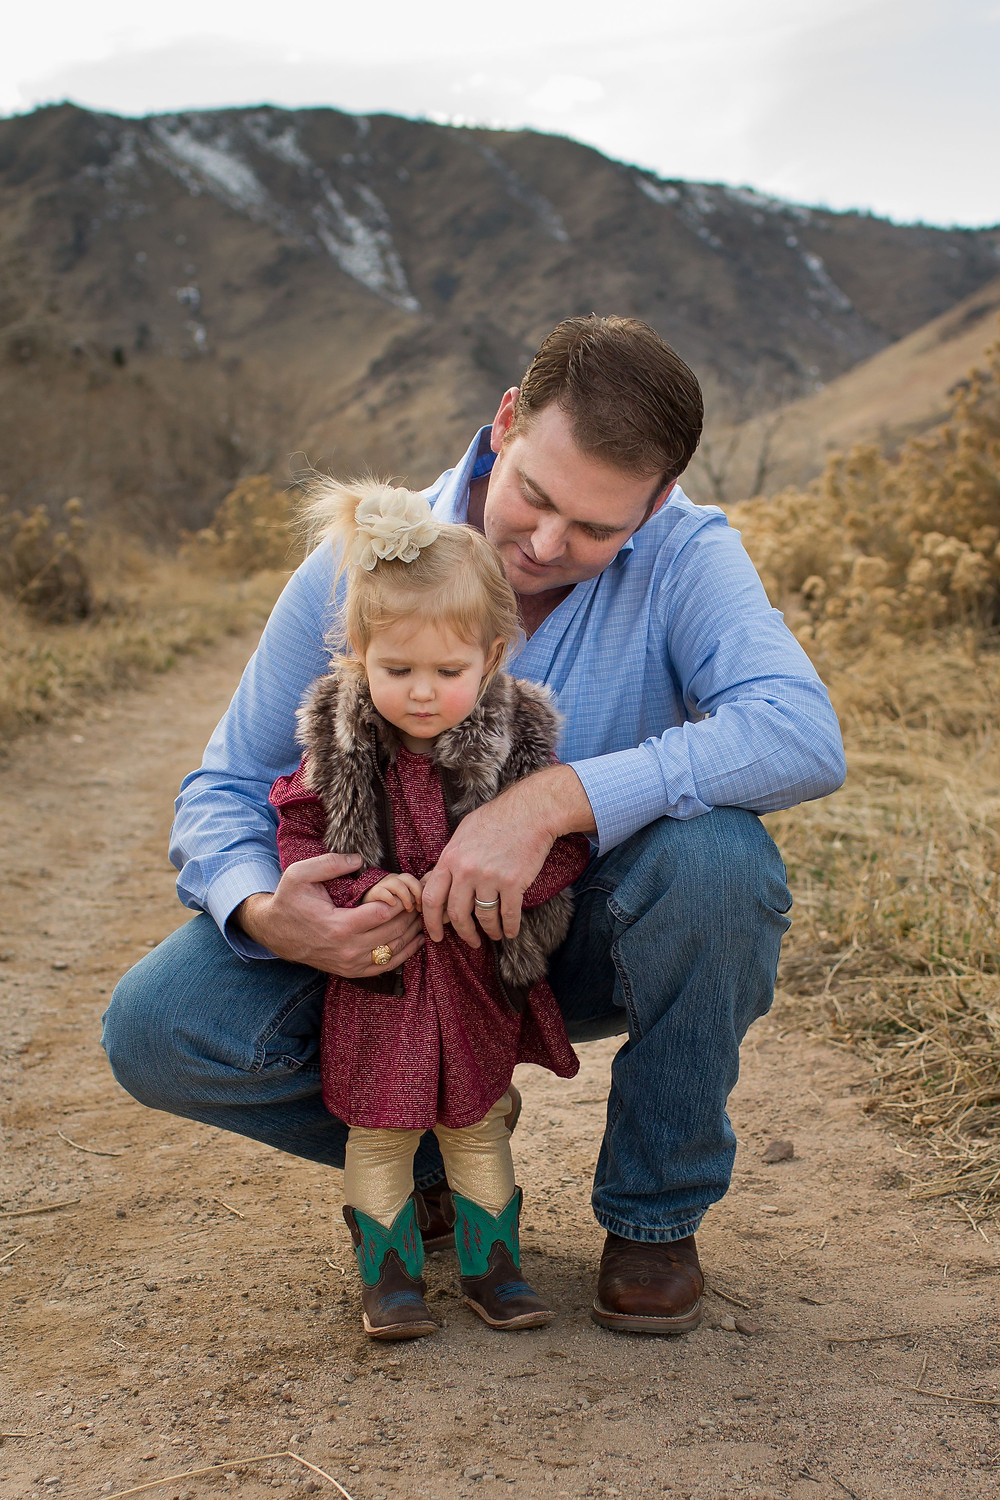 Daddy with little girl, mountain scene